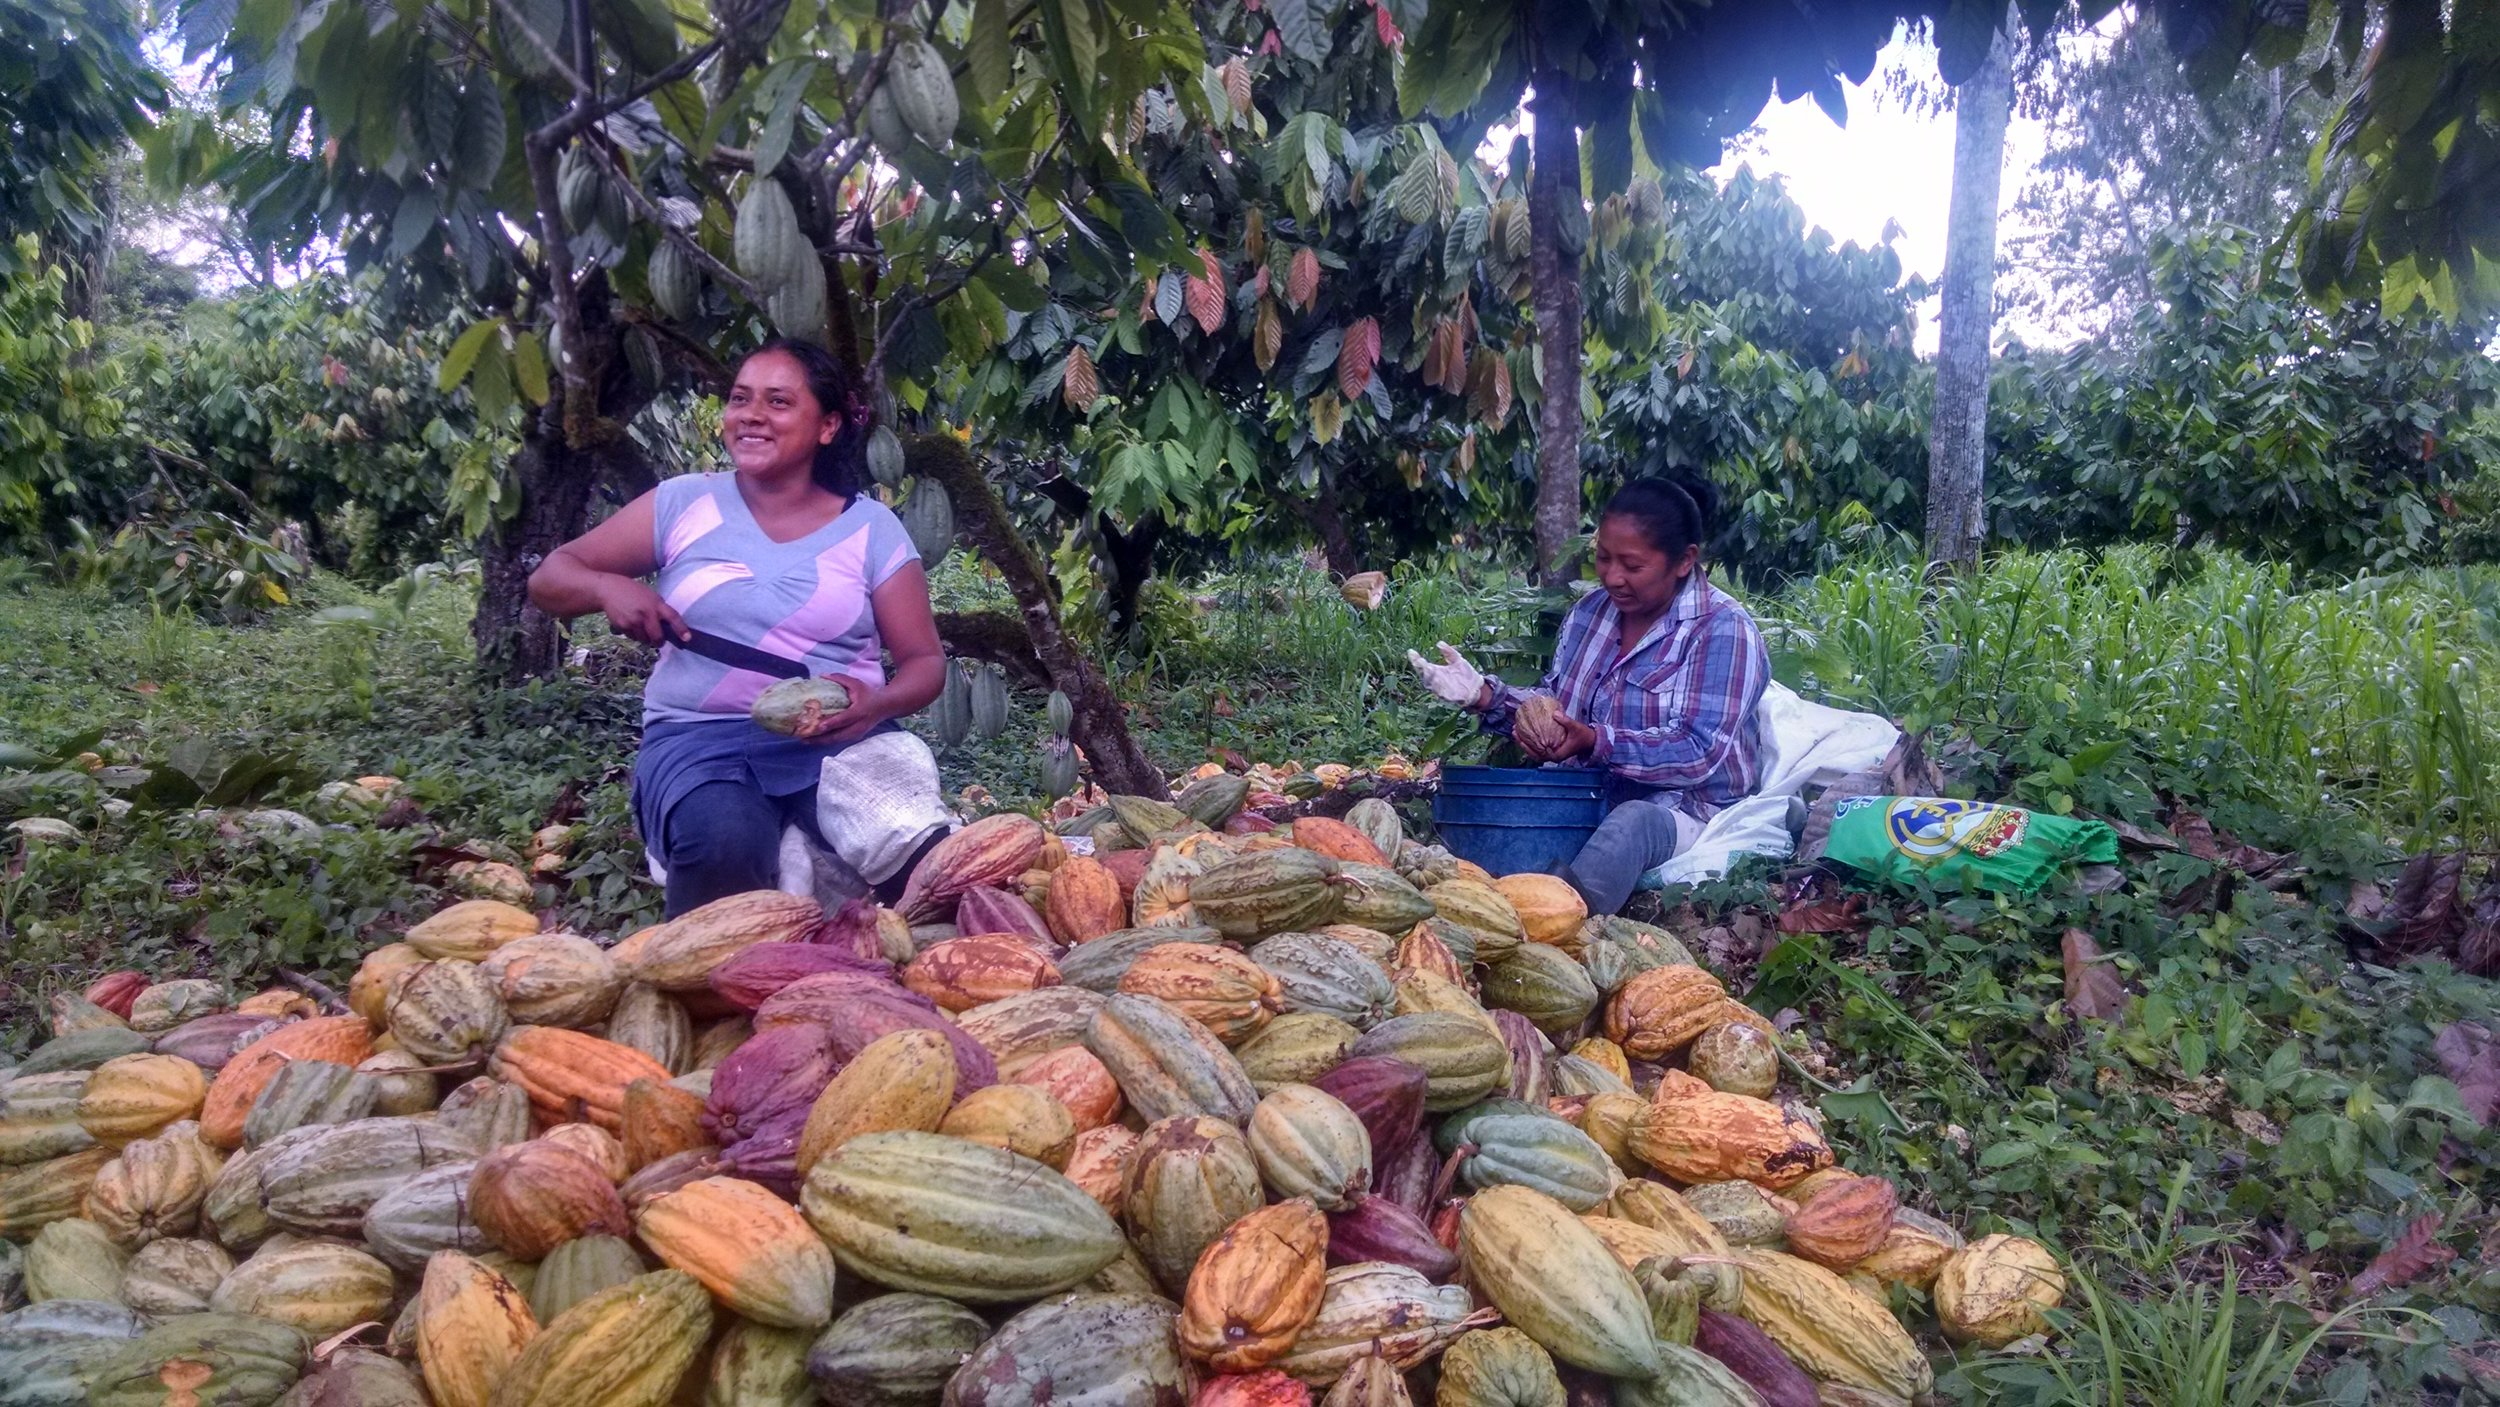 Cacao farmers Dina Ladena and Rosalva Ventura in Belize, photo by Taza Chocolate